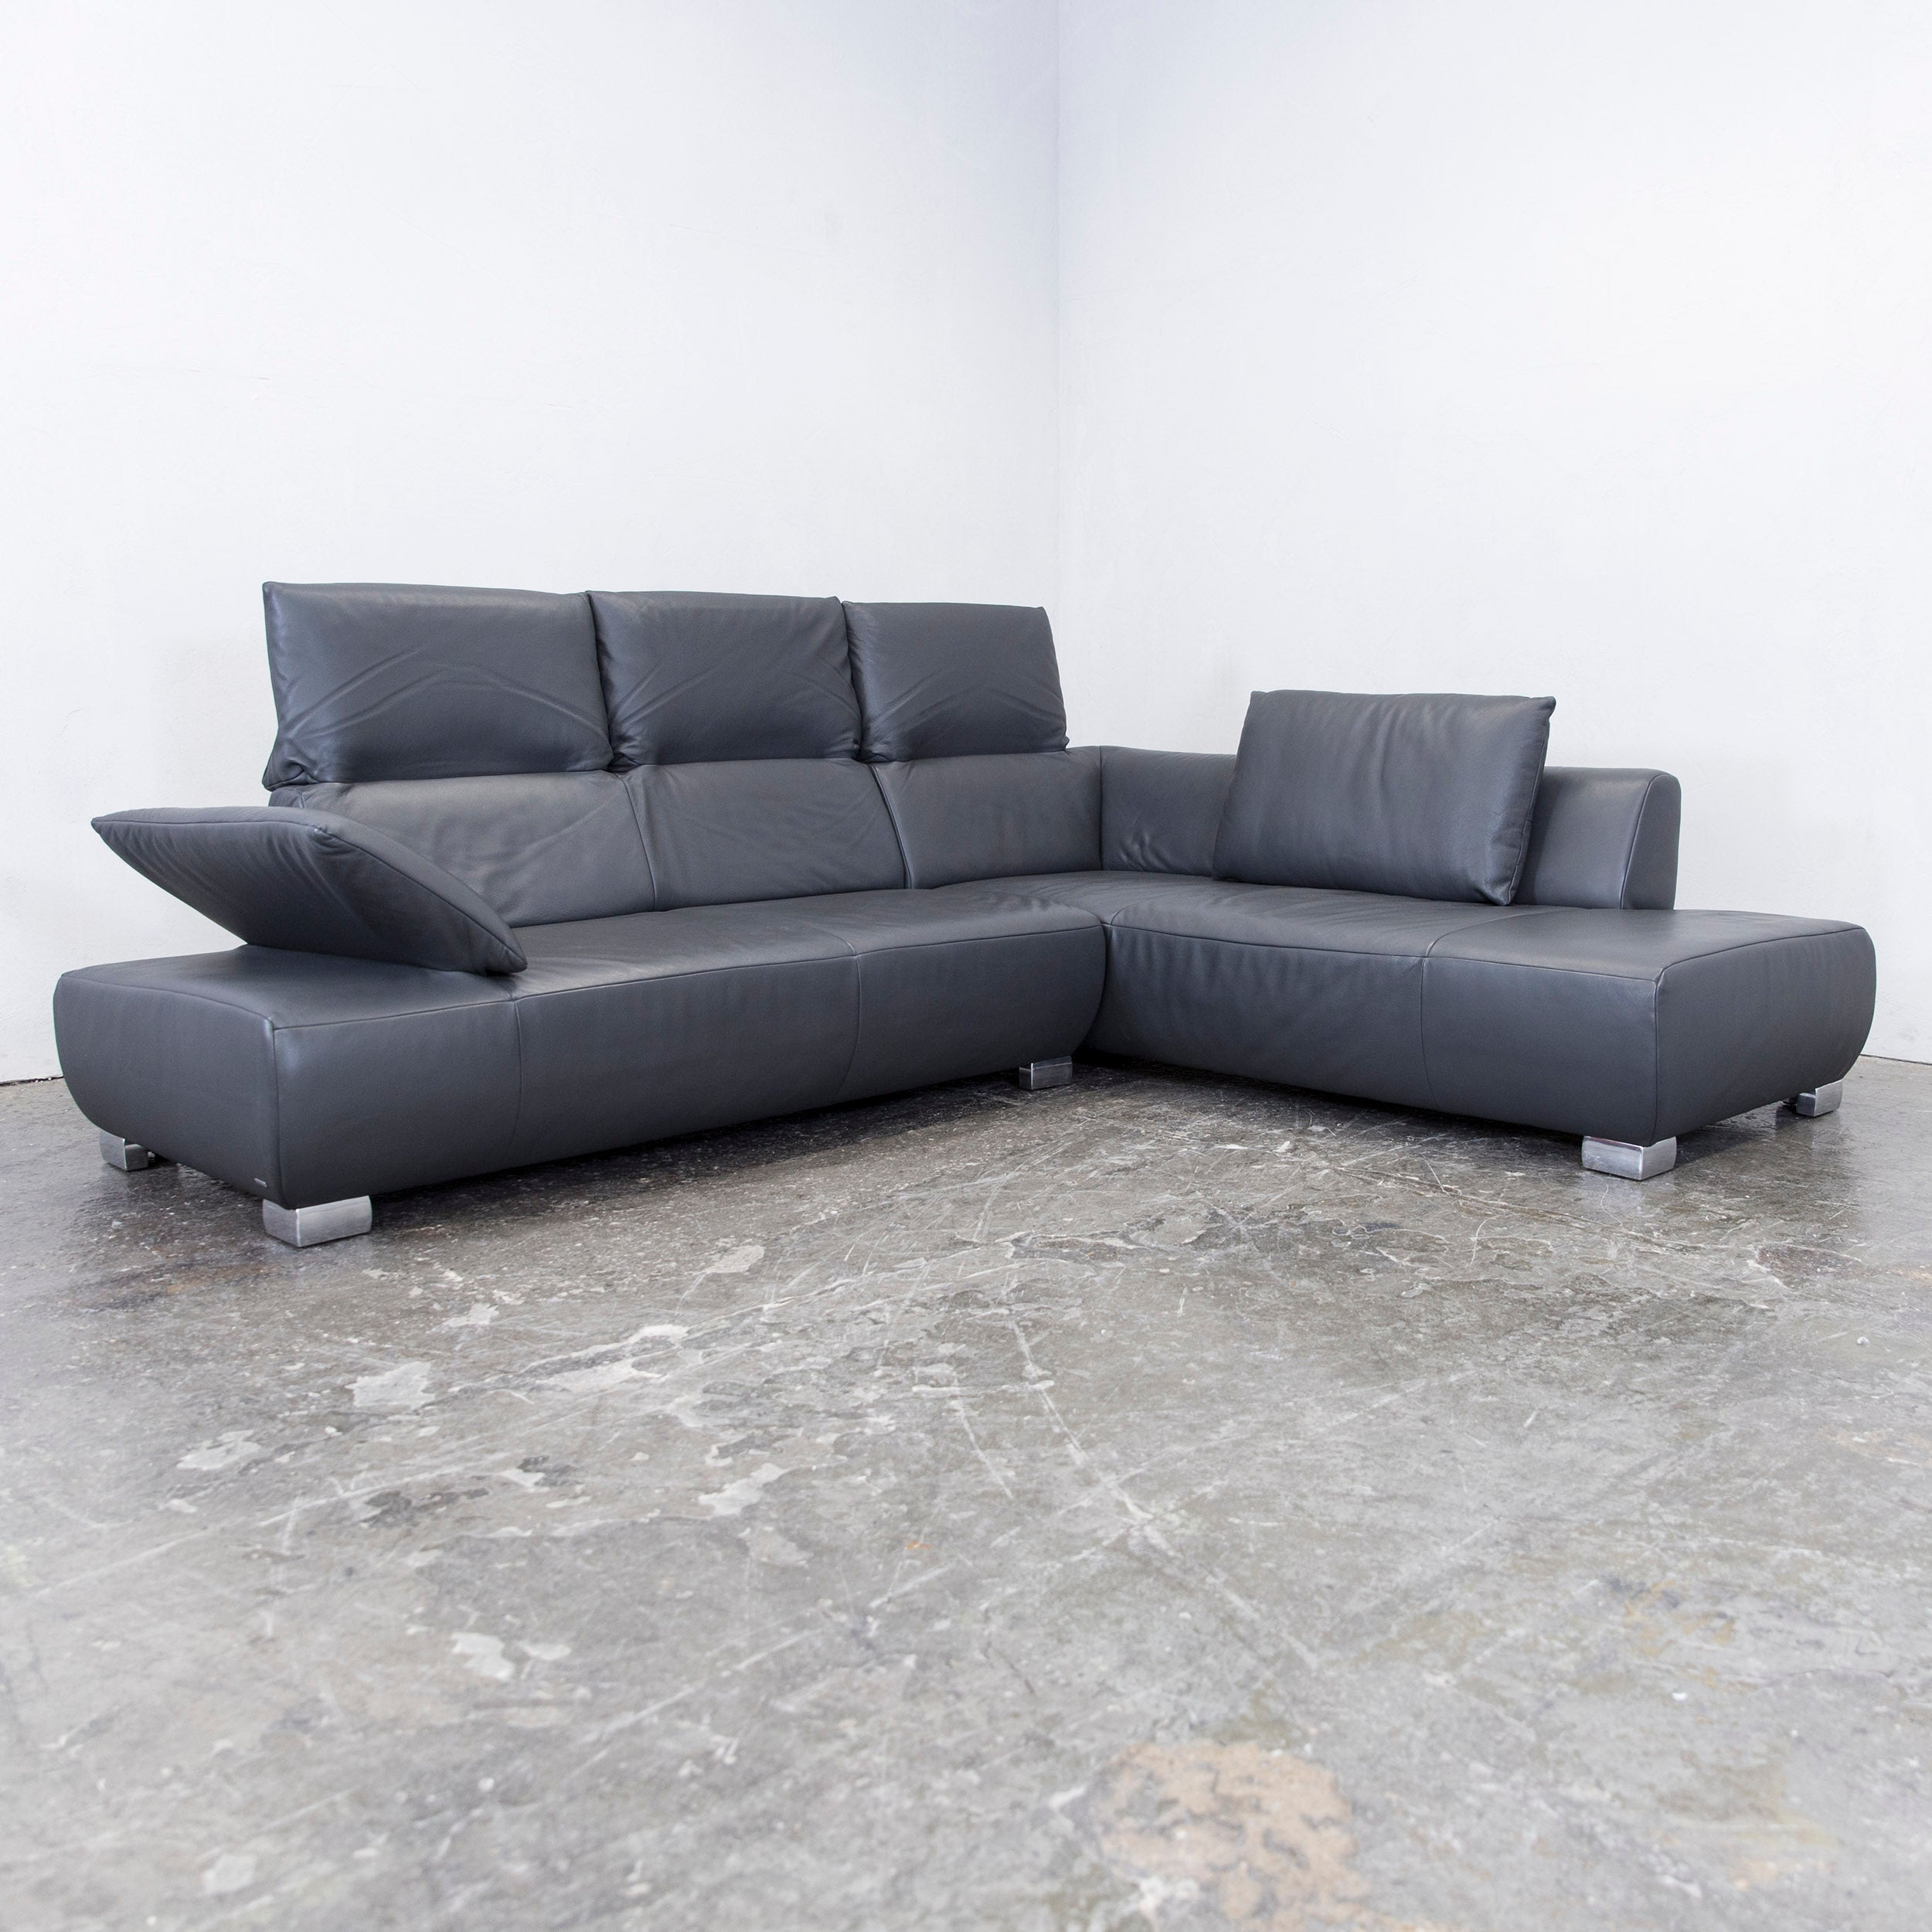 Couch Eck Koinor Volare Leather Corner Sofa Grey Anthracite Function Couch